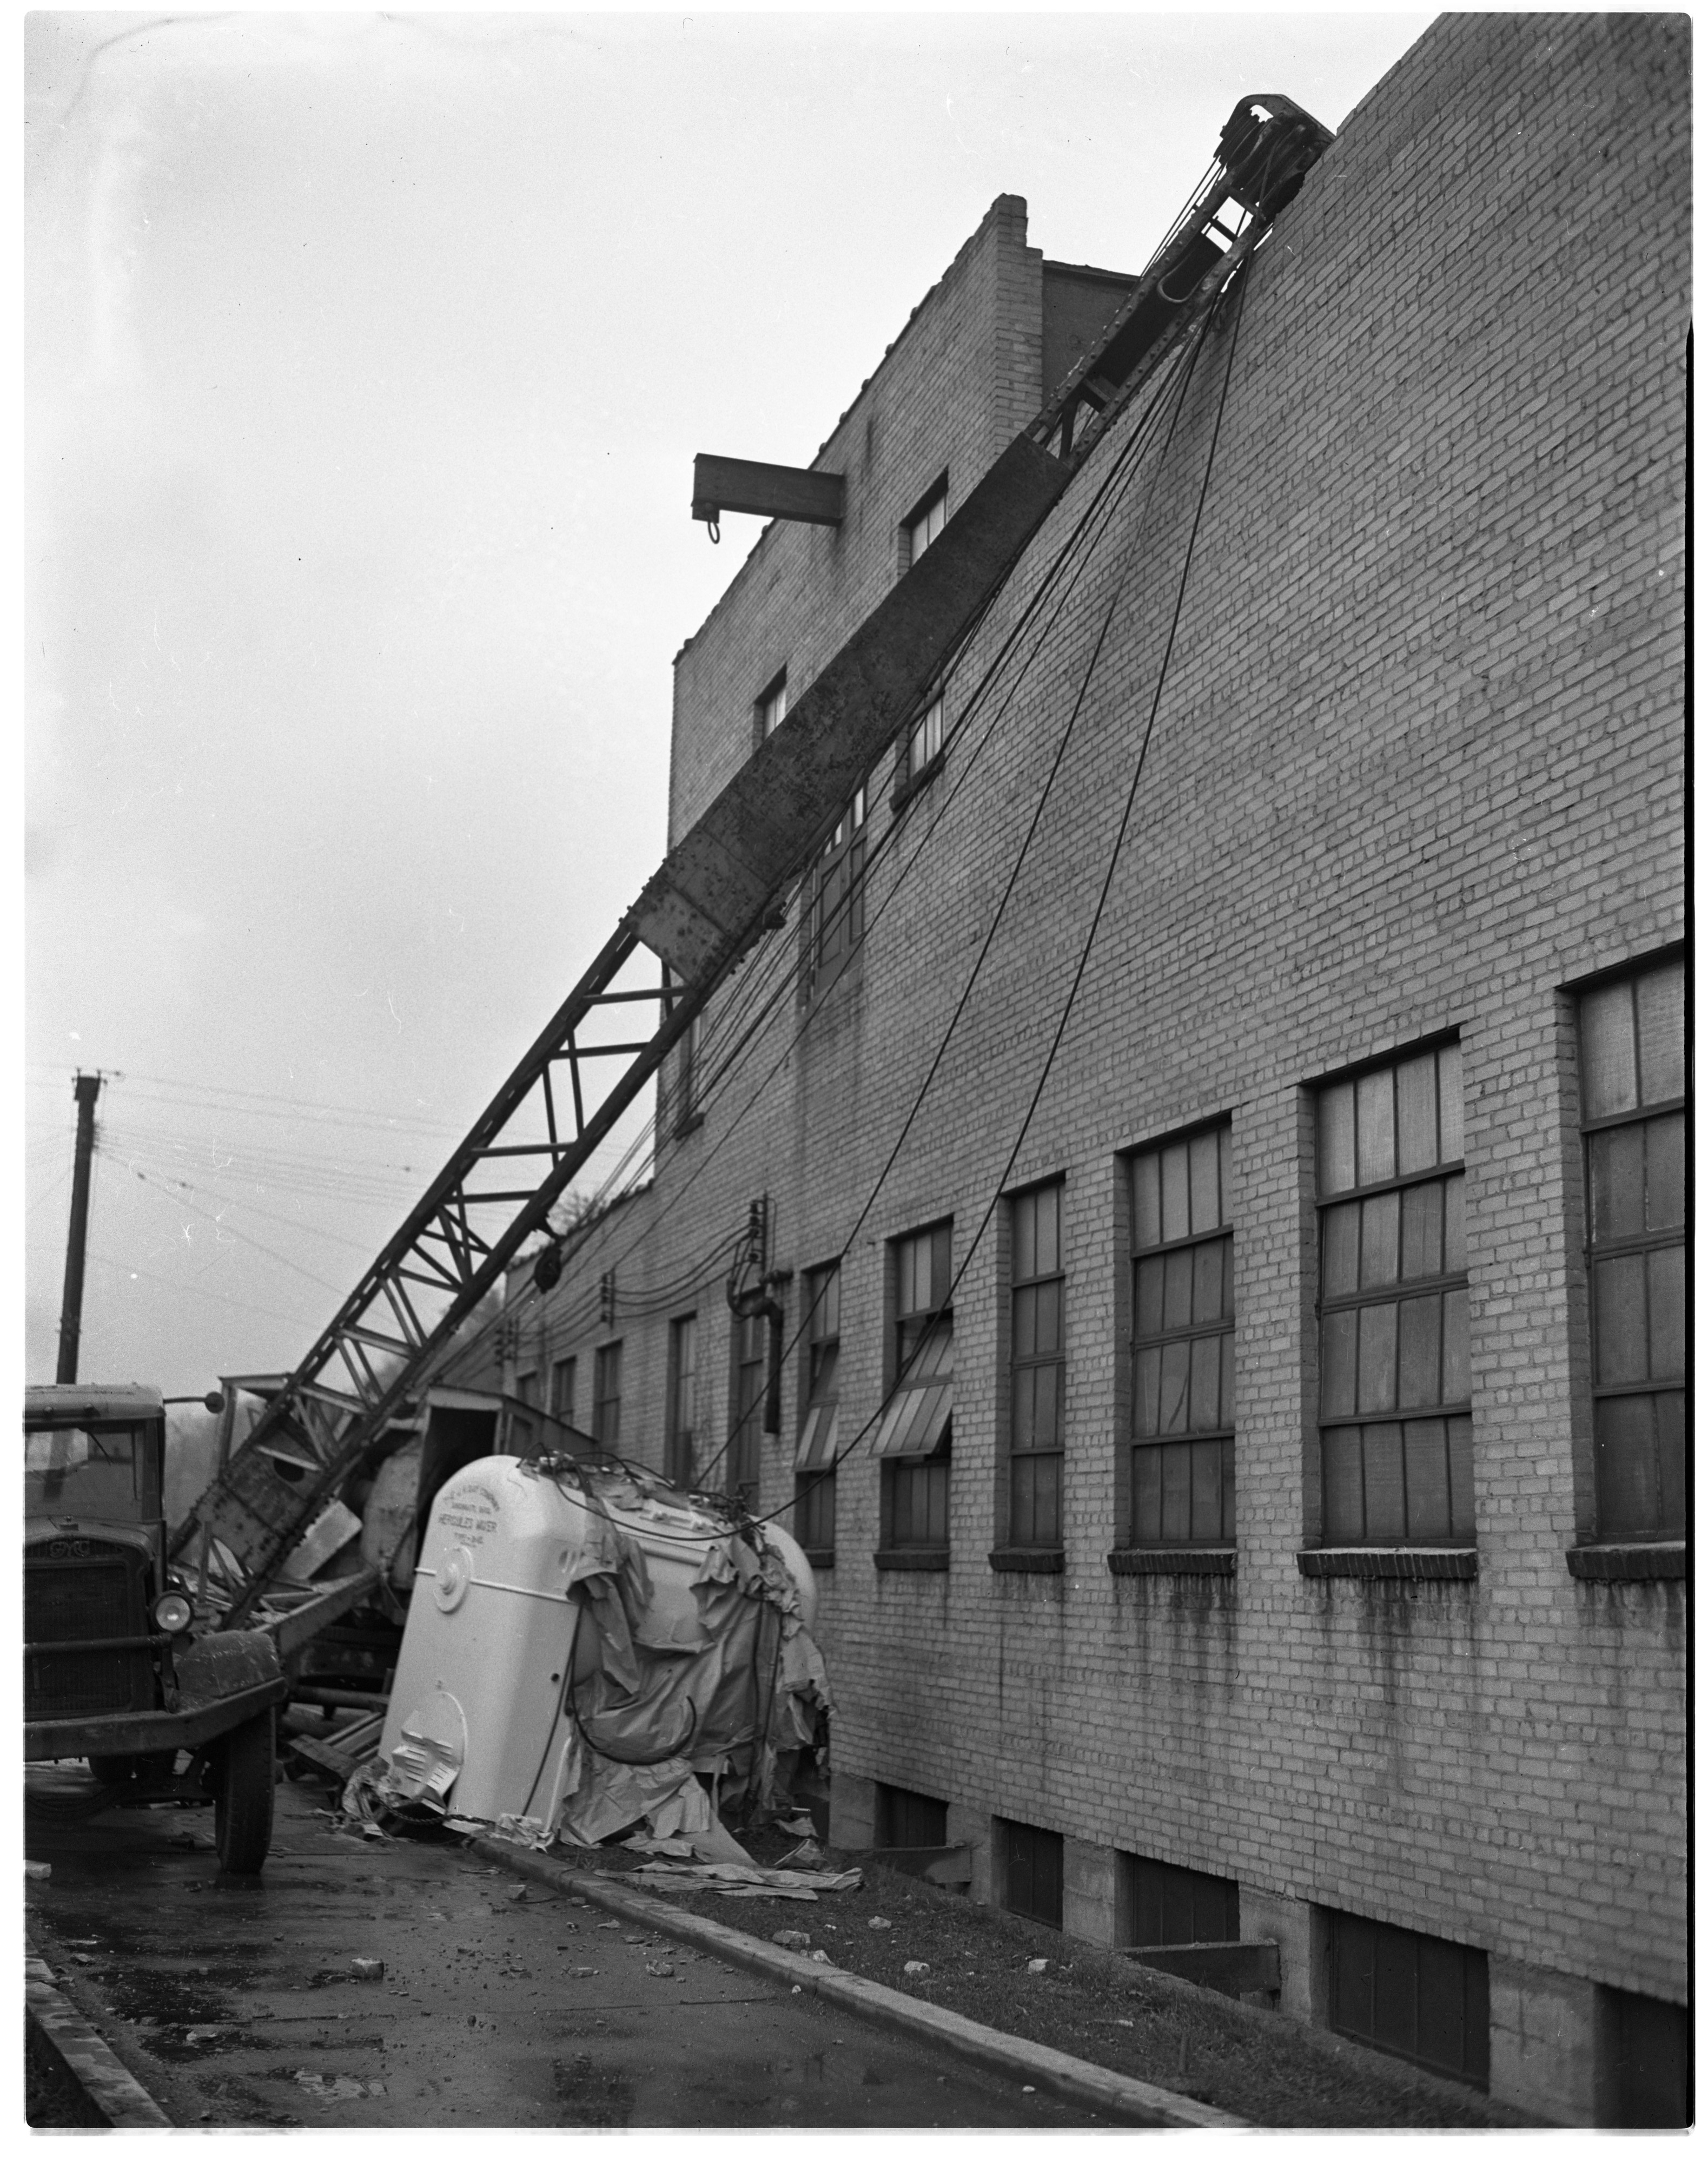 Gauss Baking Company's New Mixer Crashes, May 1944 image